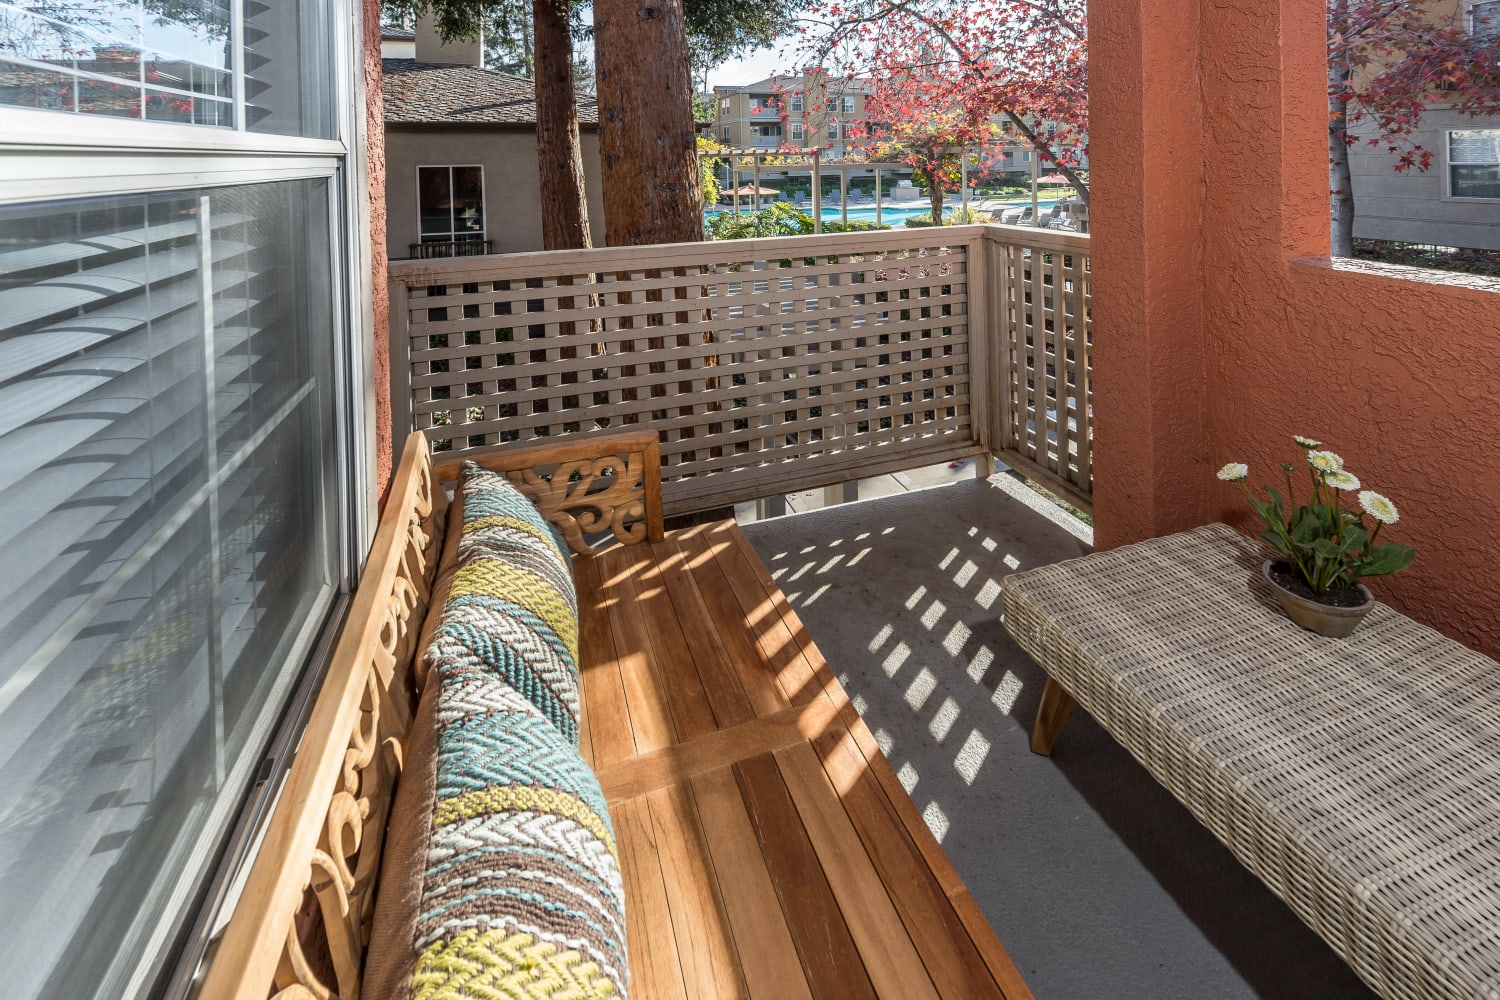 Apartments with private patios at Bella Vista Apartments in Santa Clara, California